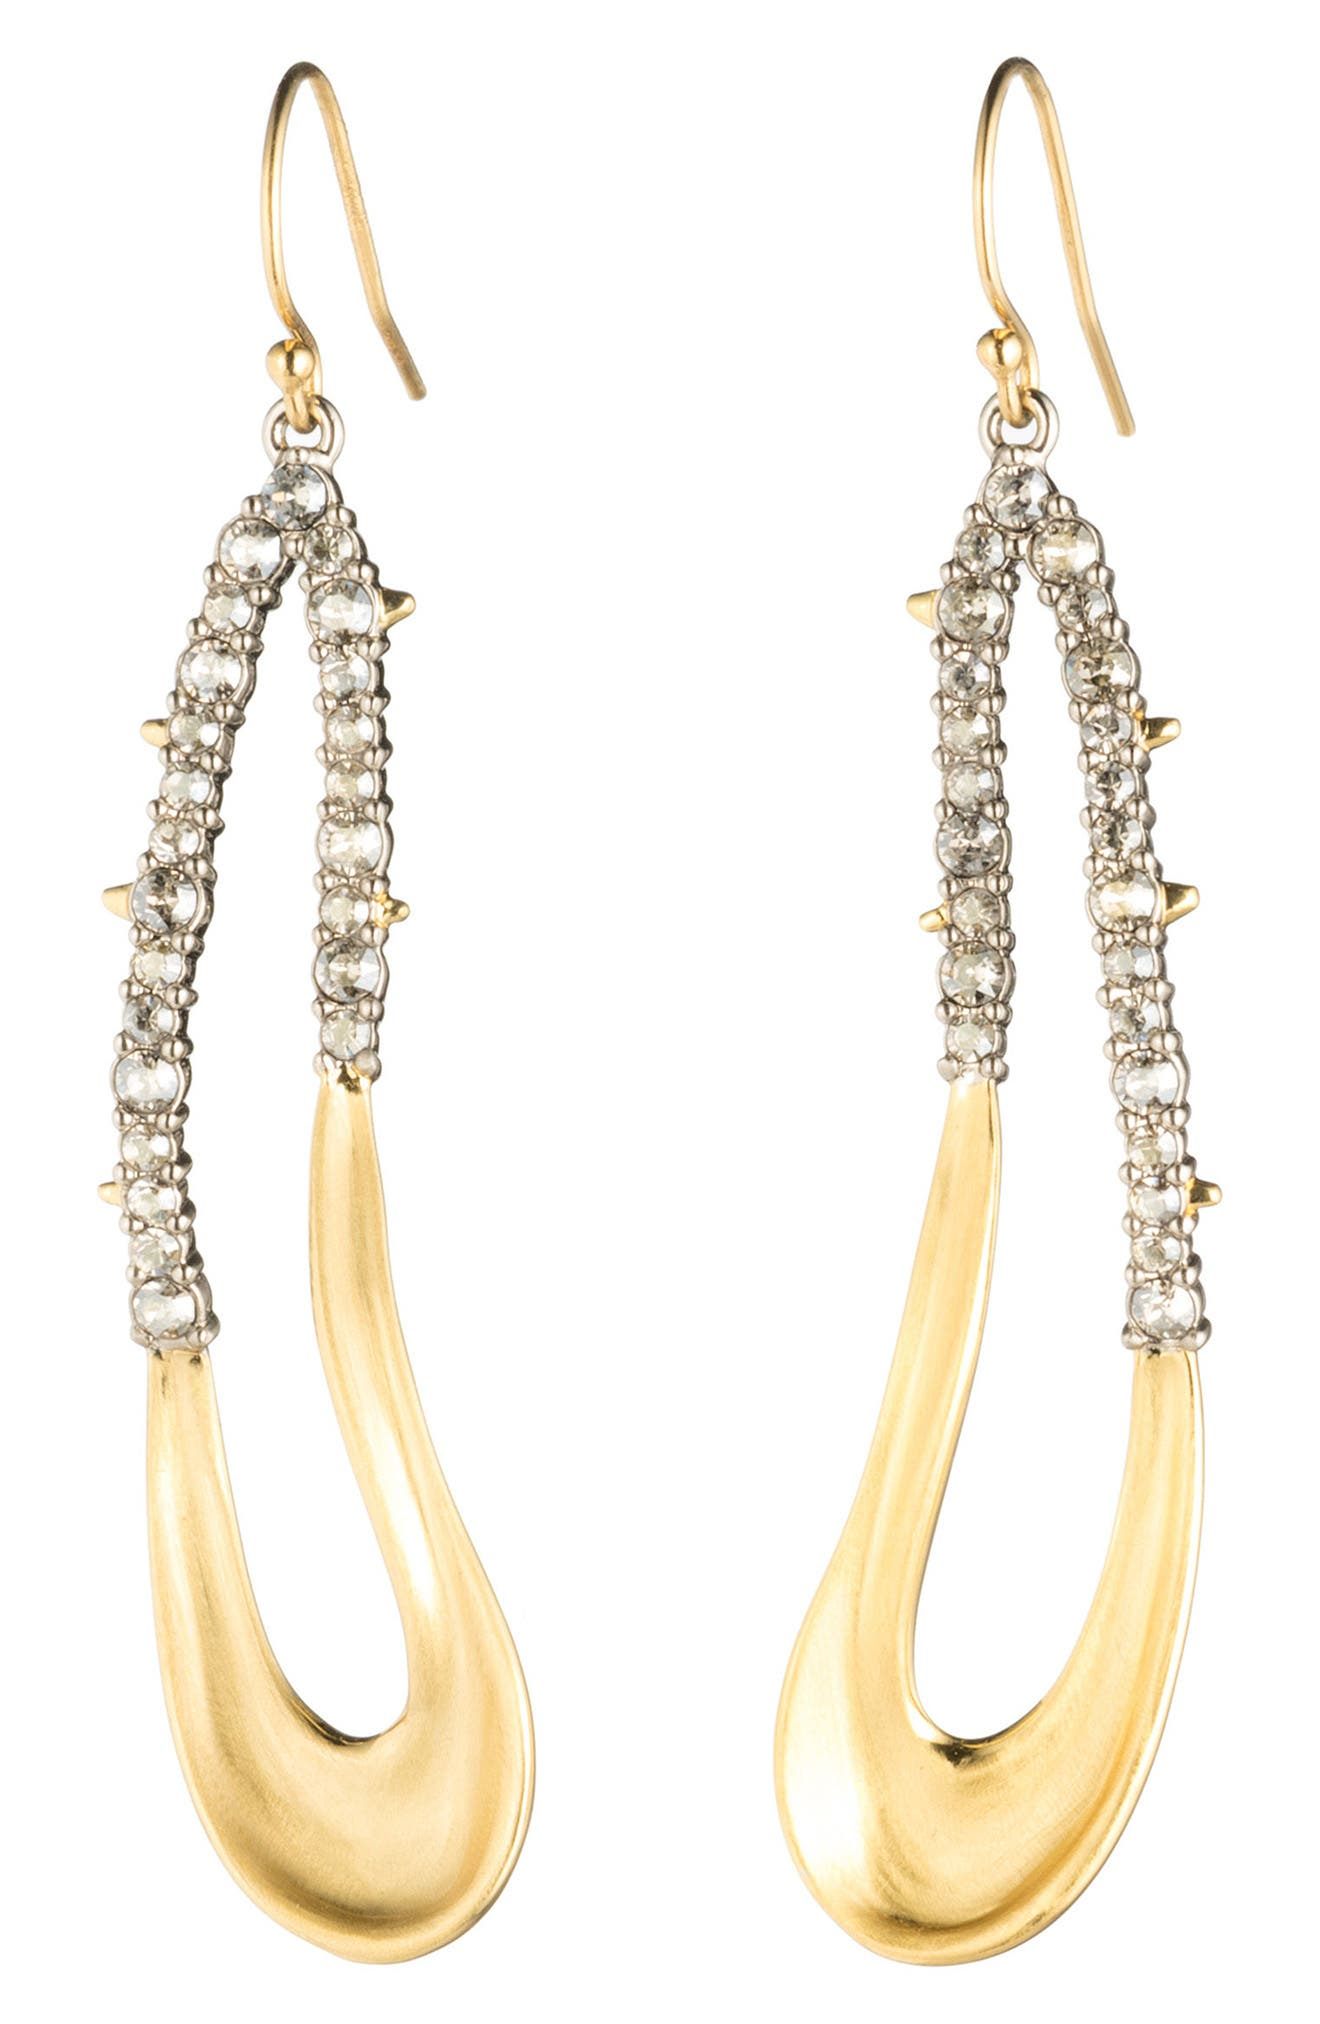 Freeform Crystal Encrusted Drop Earrings,                         Main,                         color, GOLD/ SILVER